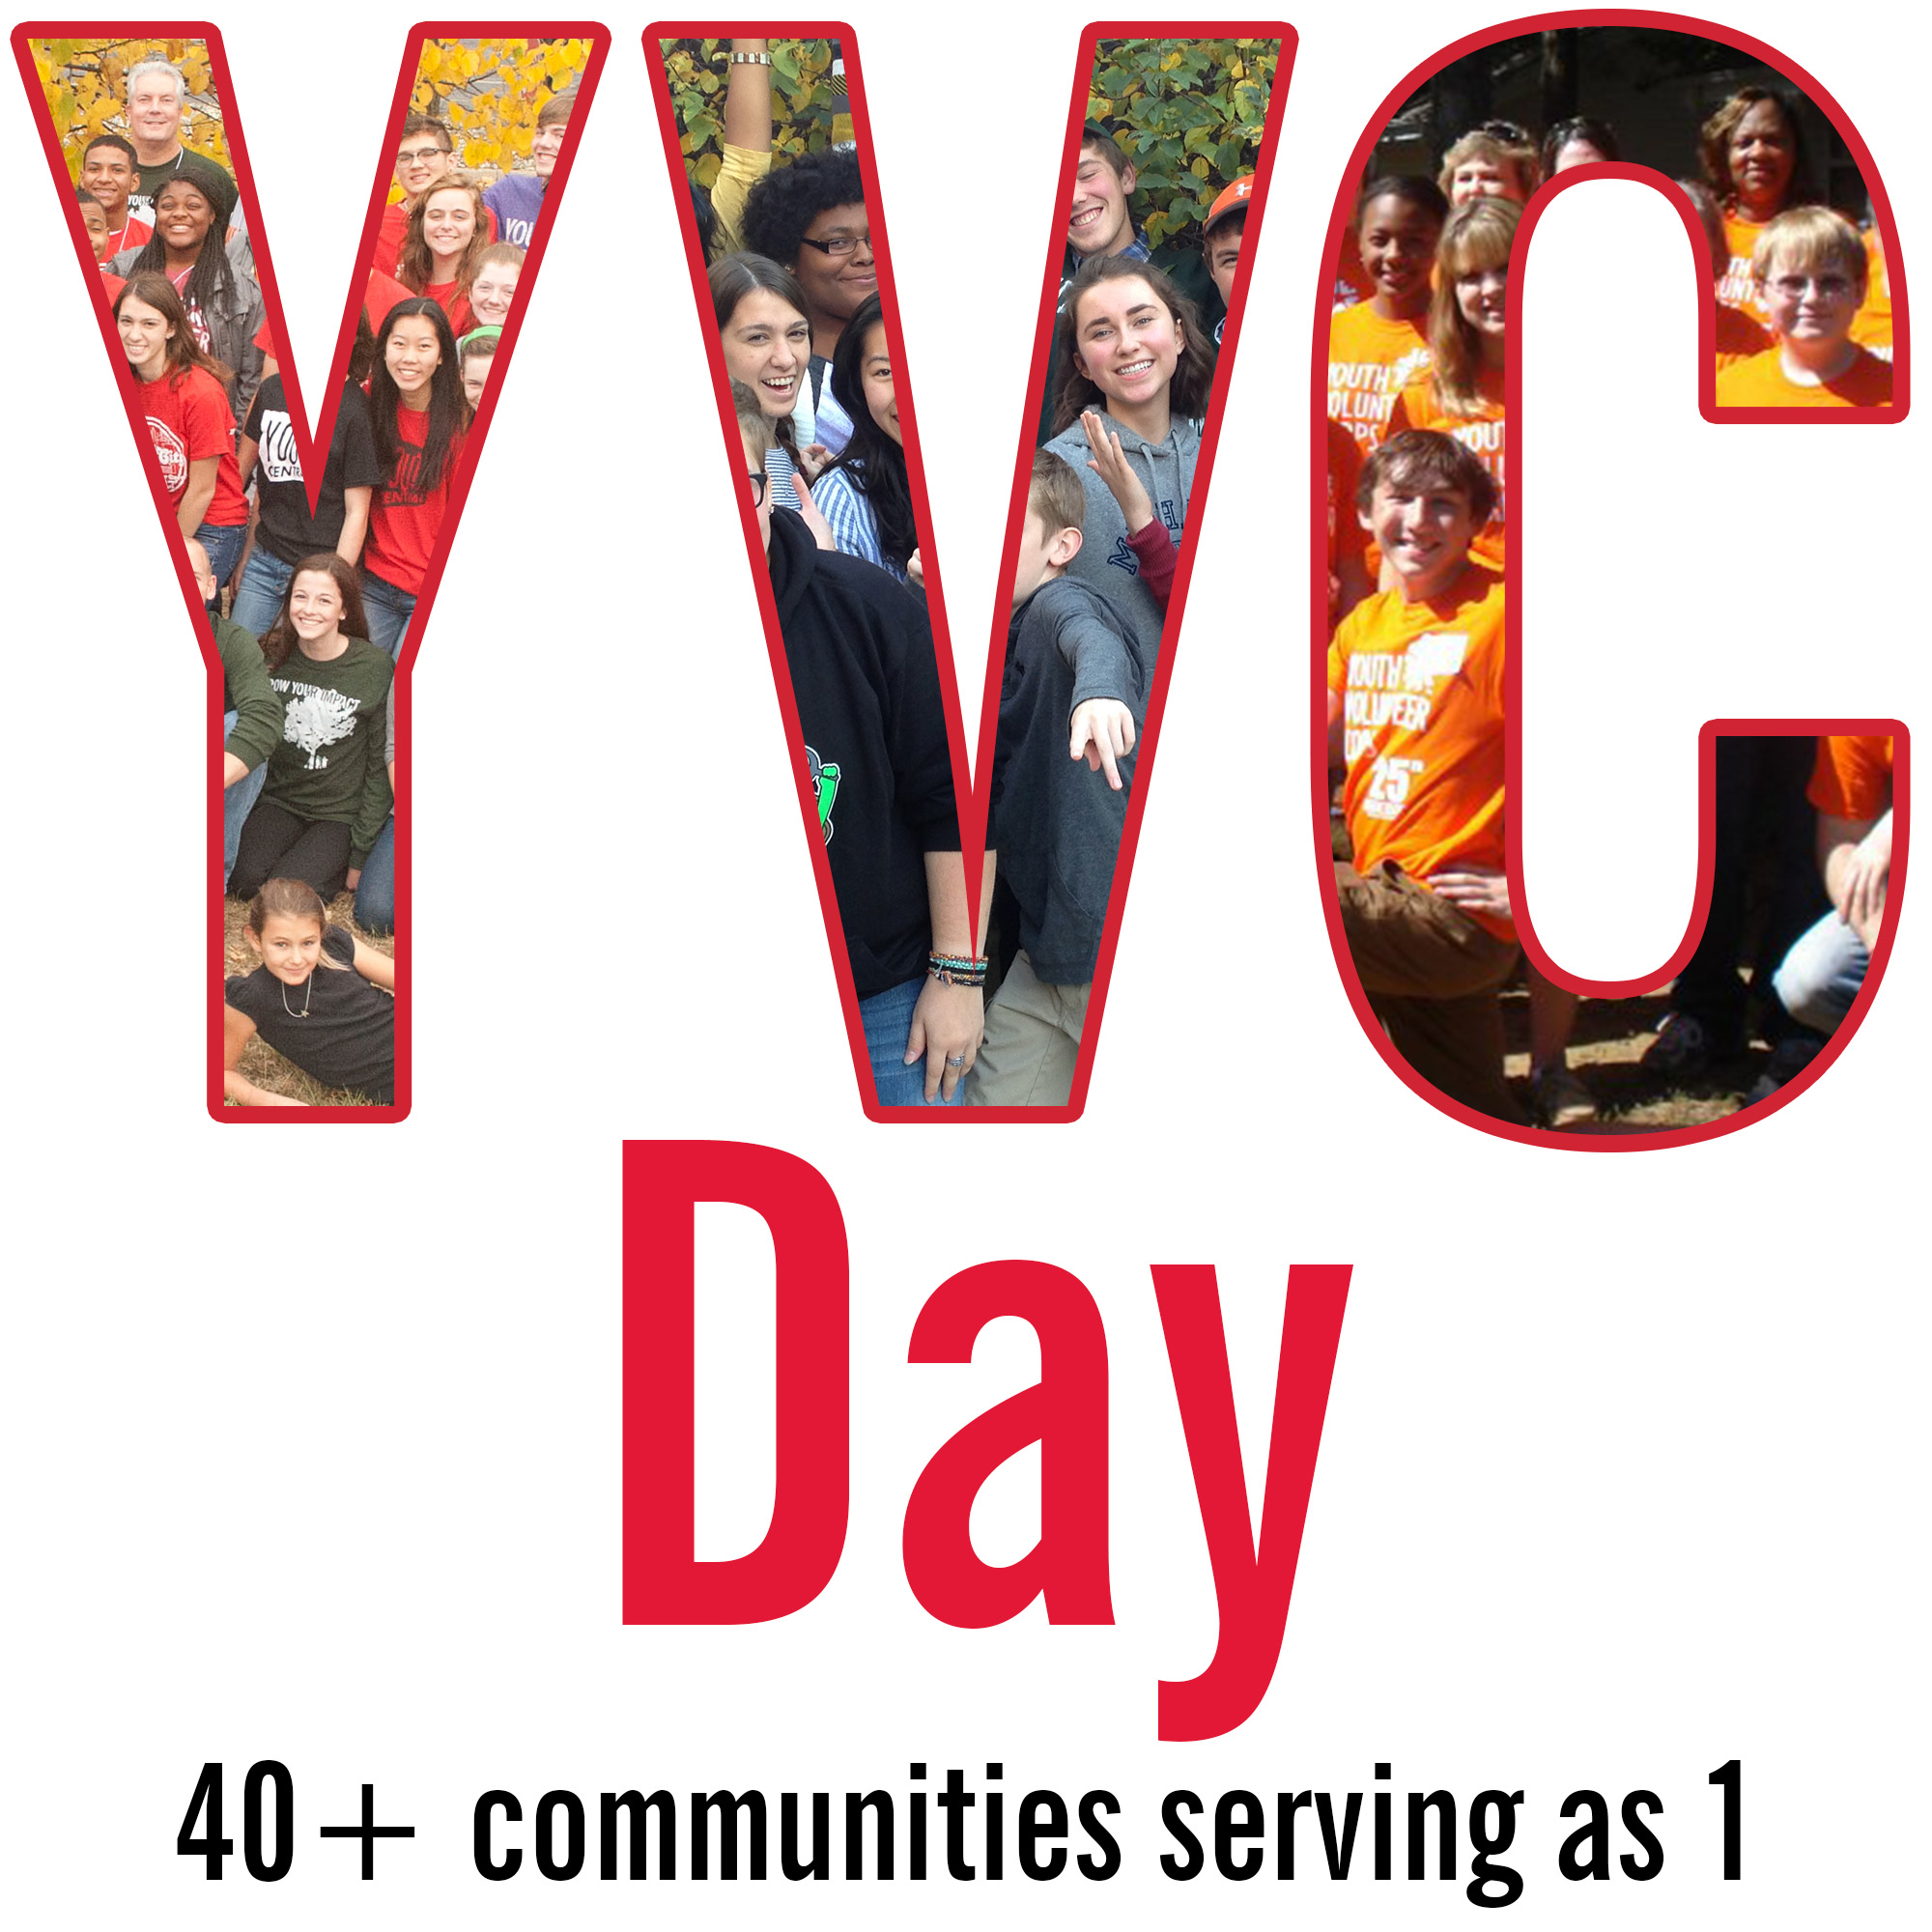 Announcing Youth Volunteer Corps Day 2016